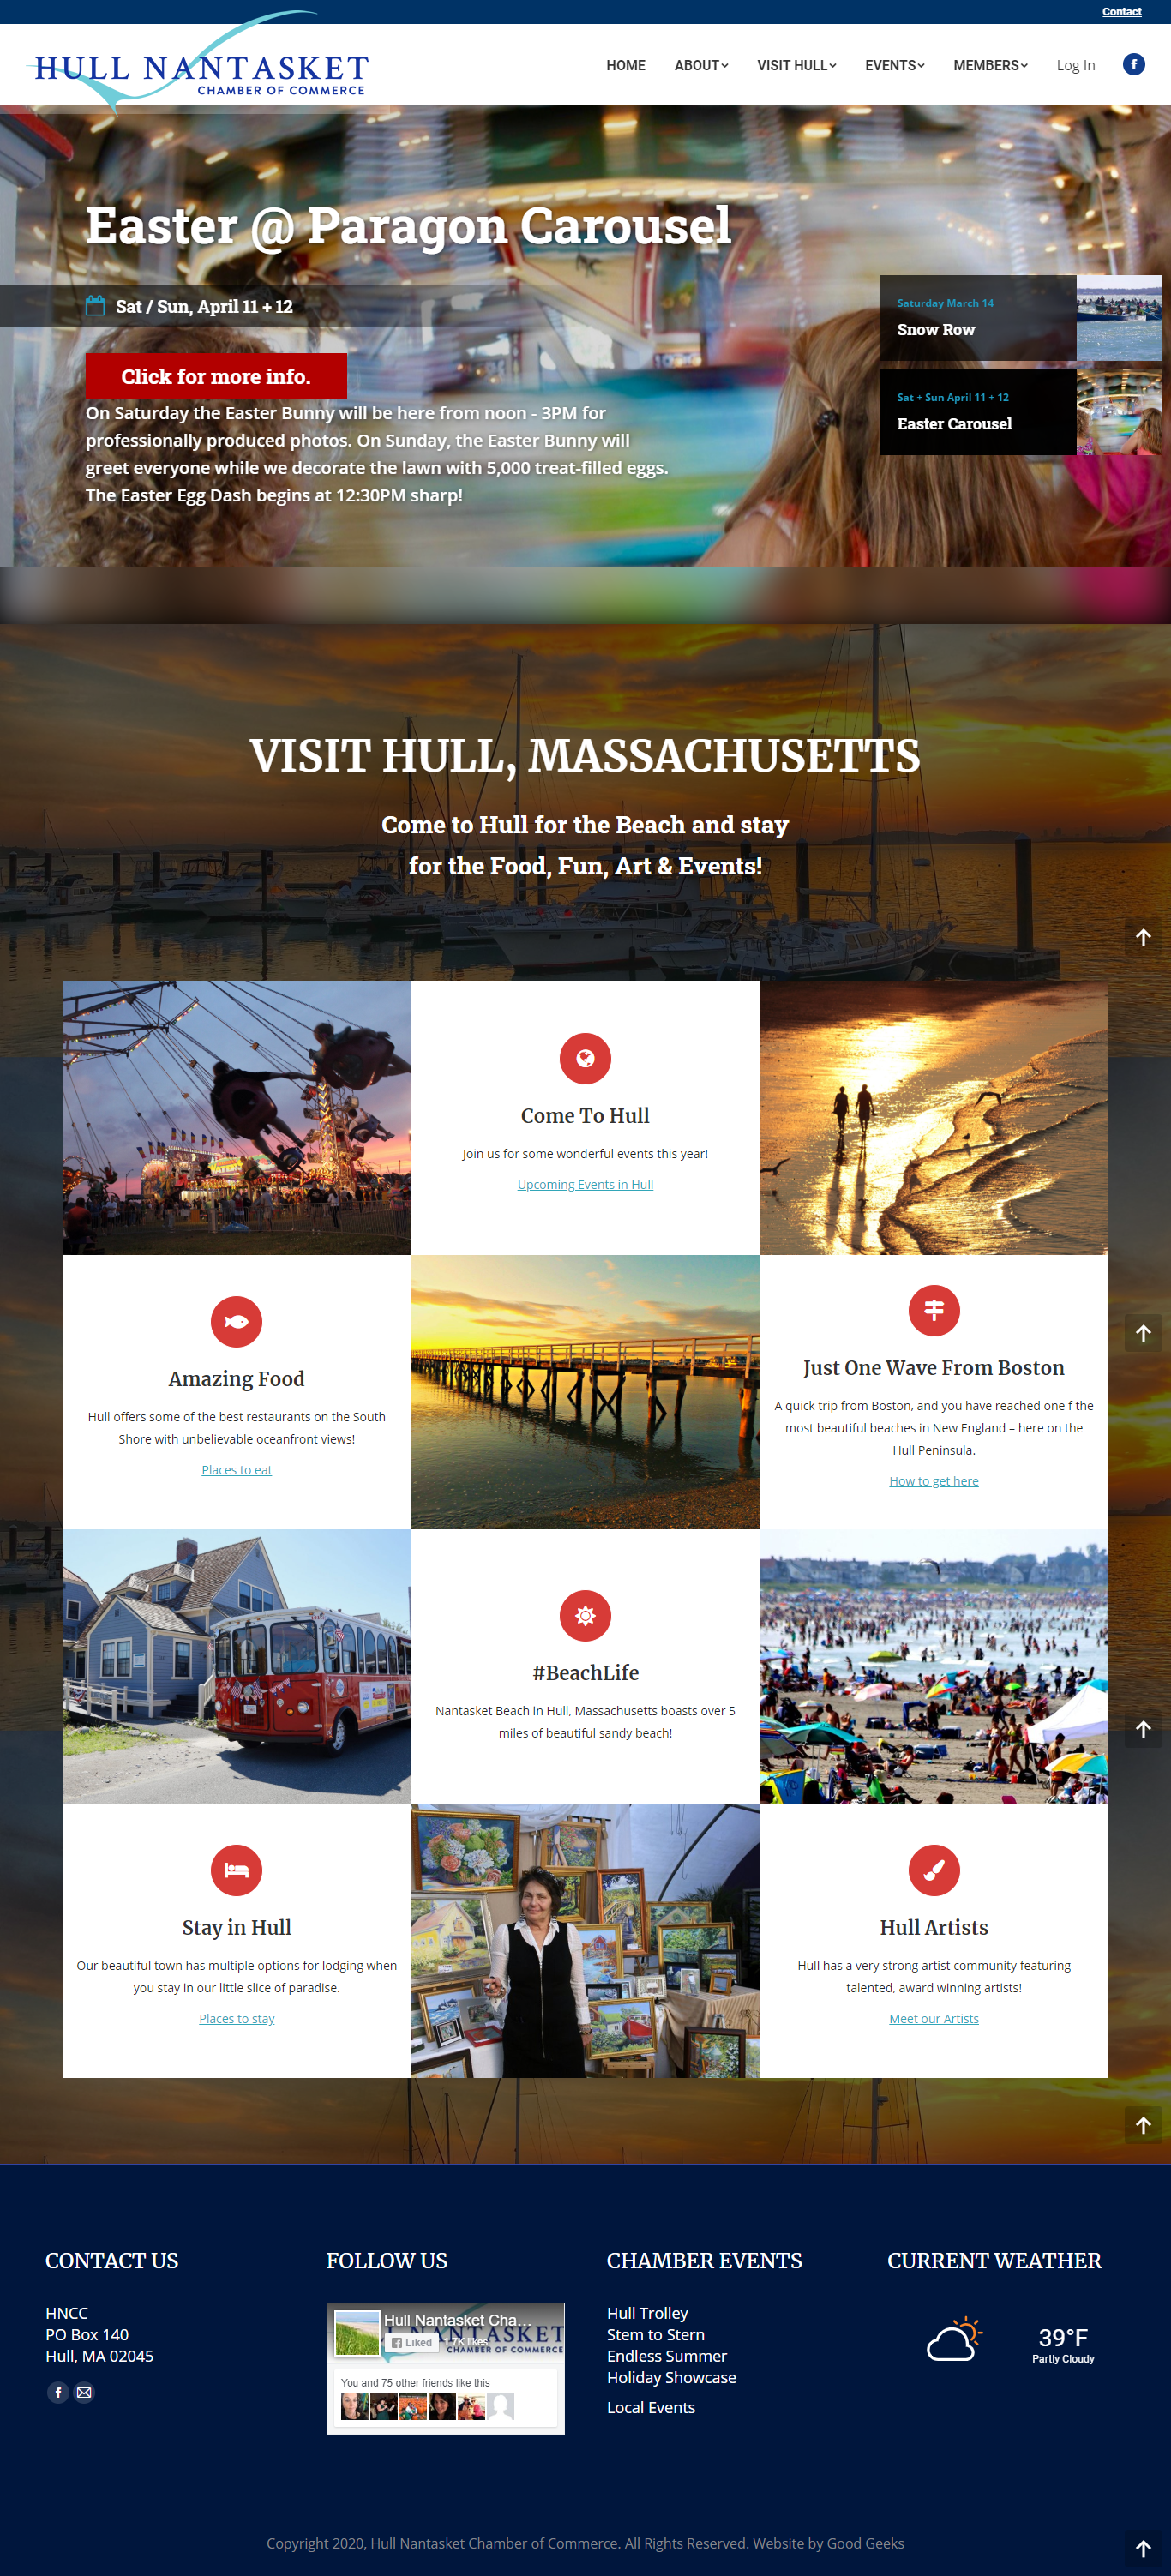 Hull Nantasket Chamber of Commerce Home Page